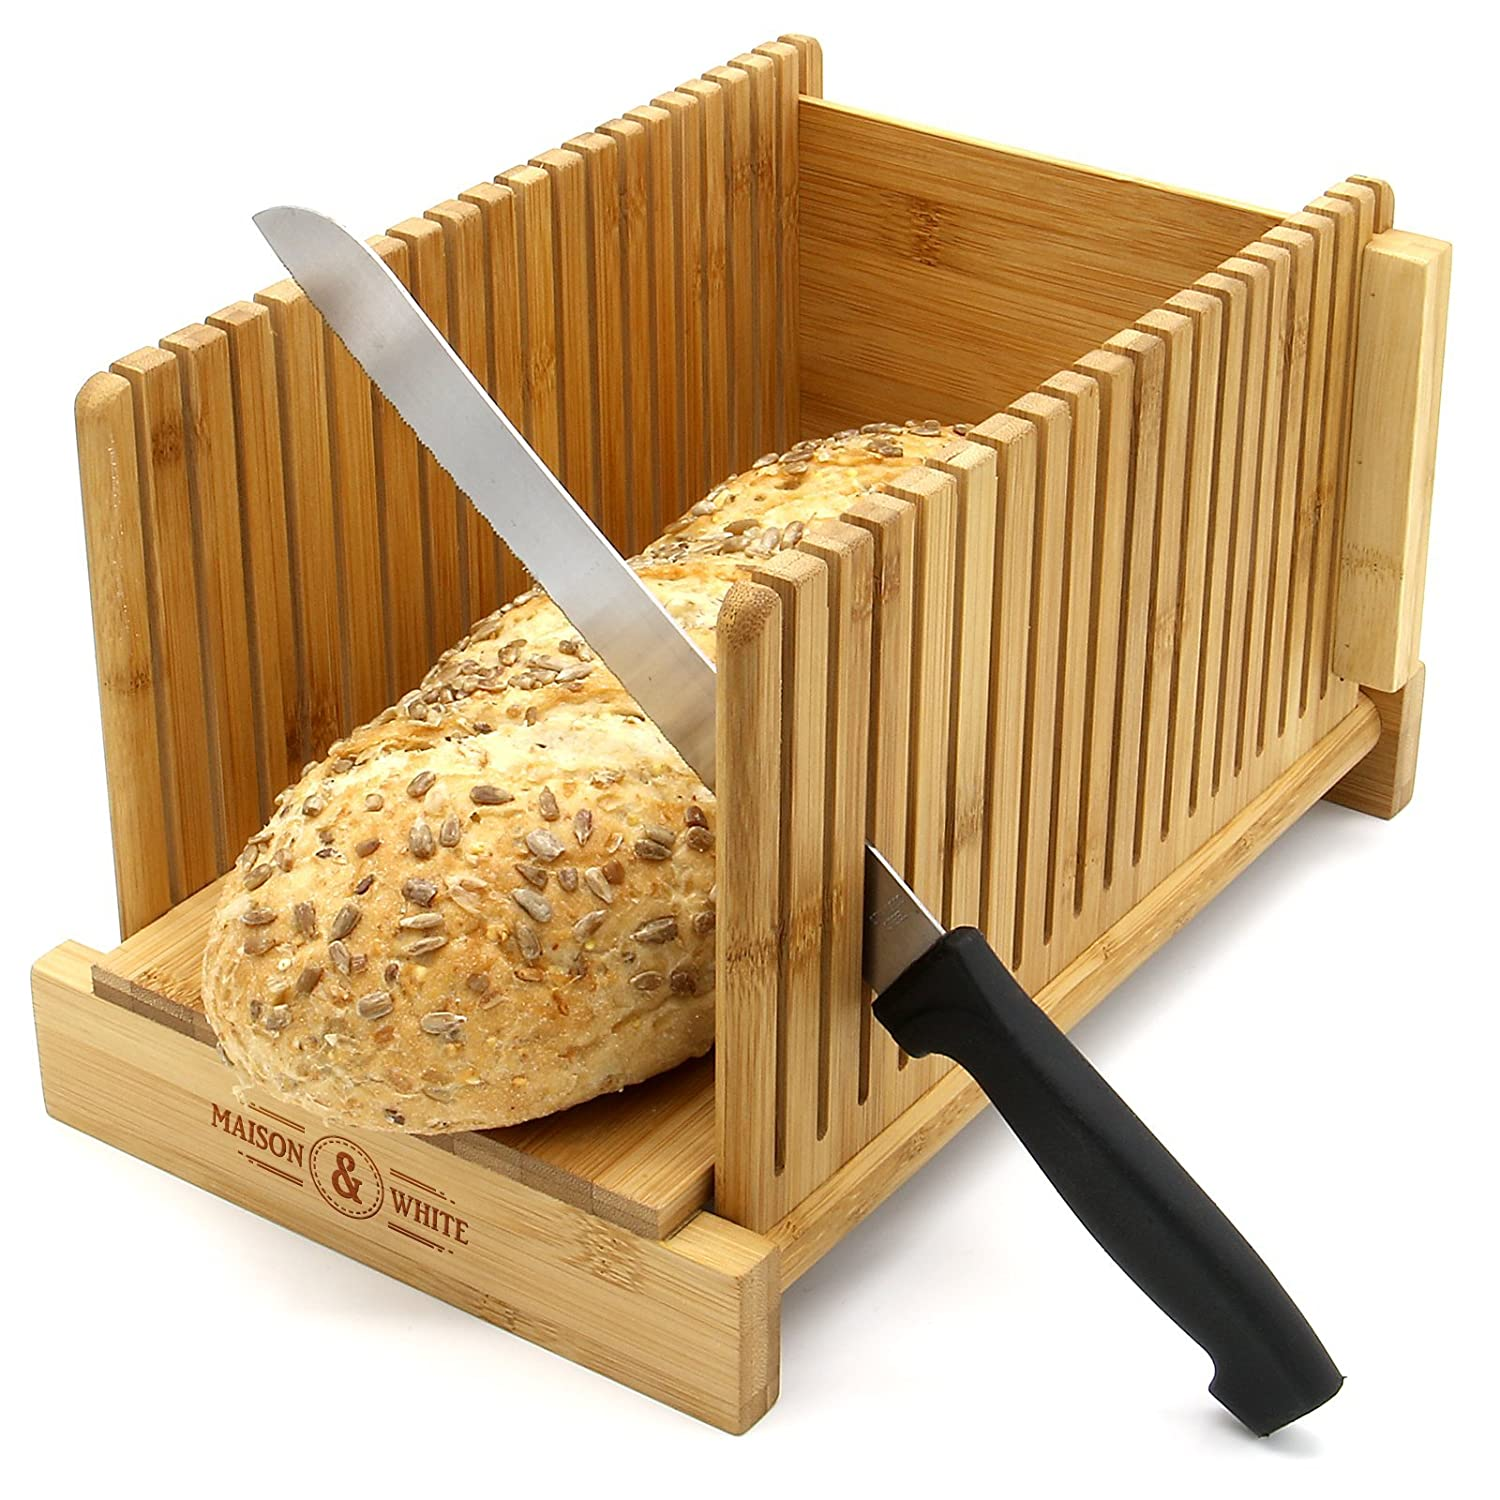 Bamboo Bread Slicer | Loaf Cutting Board & Knife Slicing Guide | Adjustable, Foldable, Compact | Suitable For Homemade or Bought Bread Cakes & Loaves | M&W Xbite